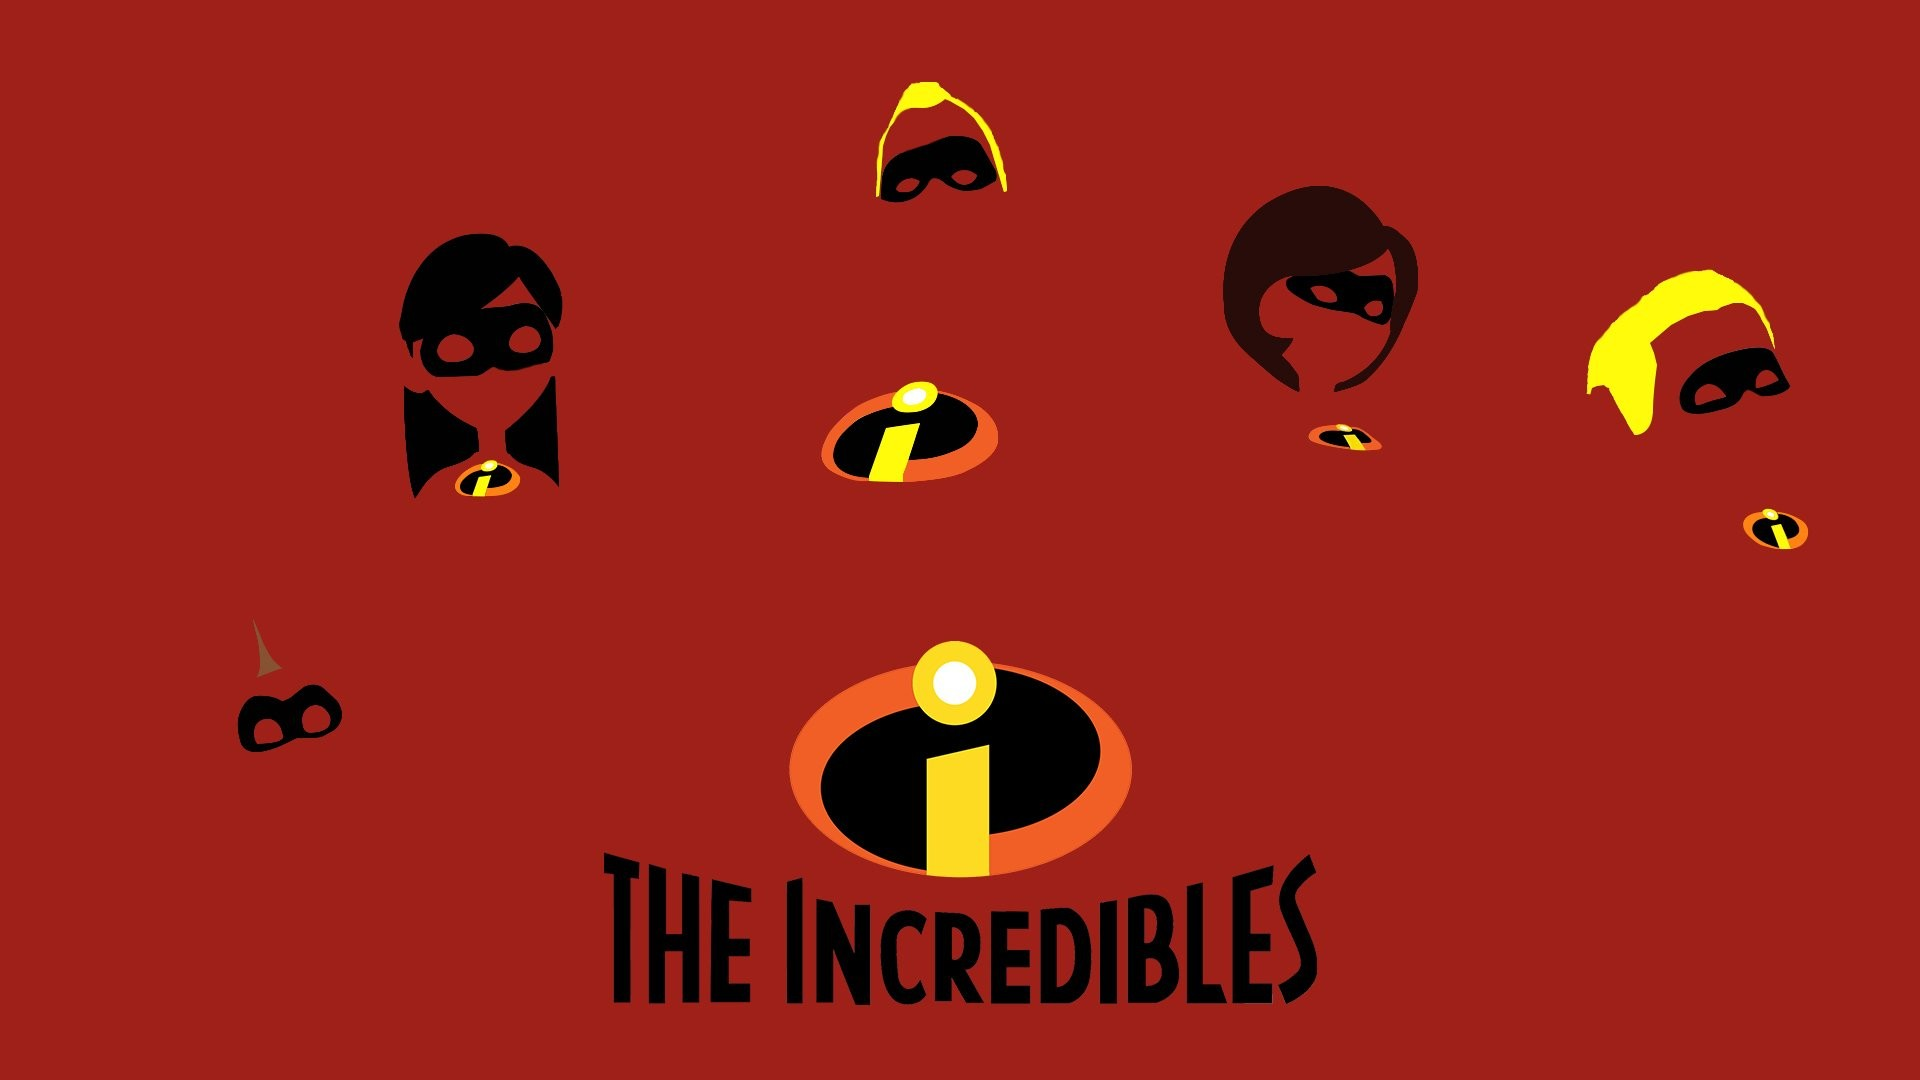 the incredibles wallpapers (63+ images)